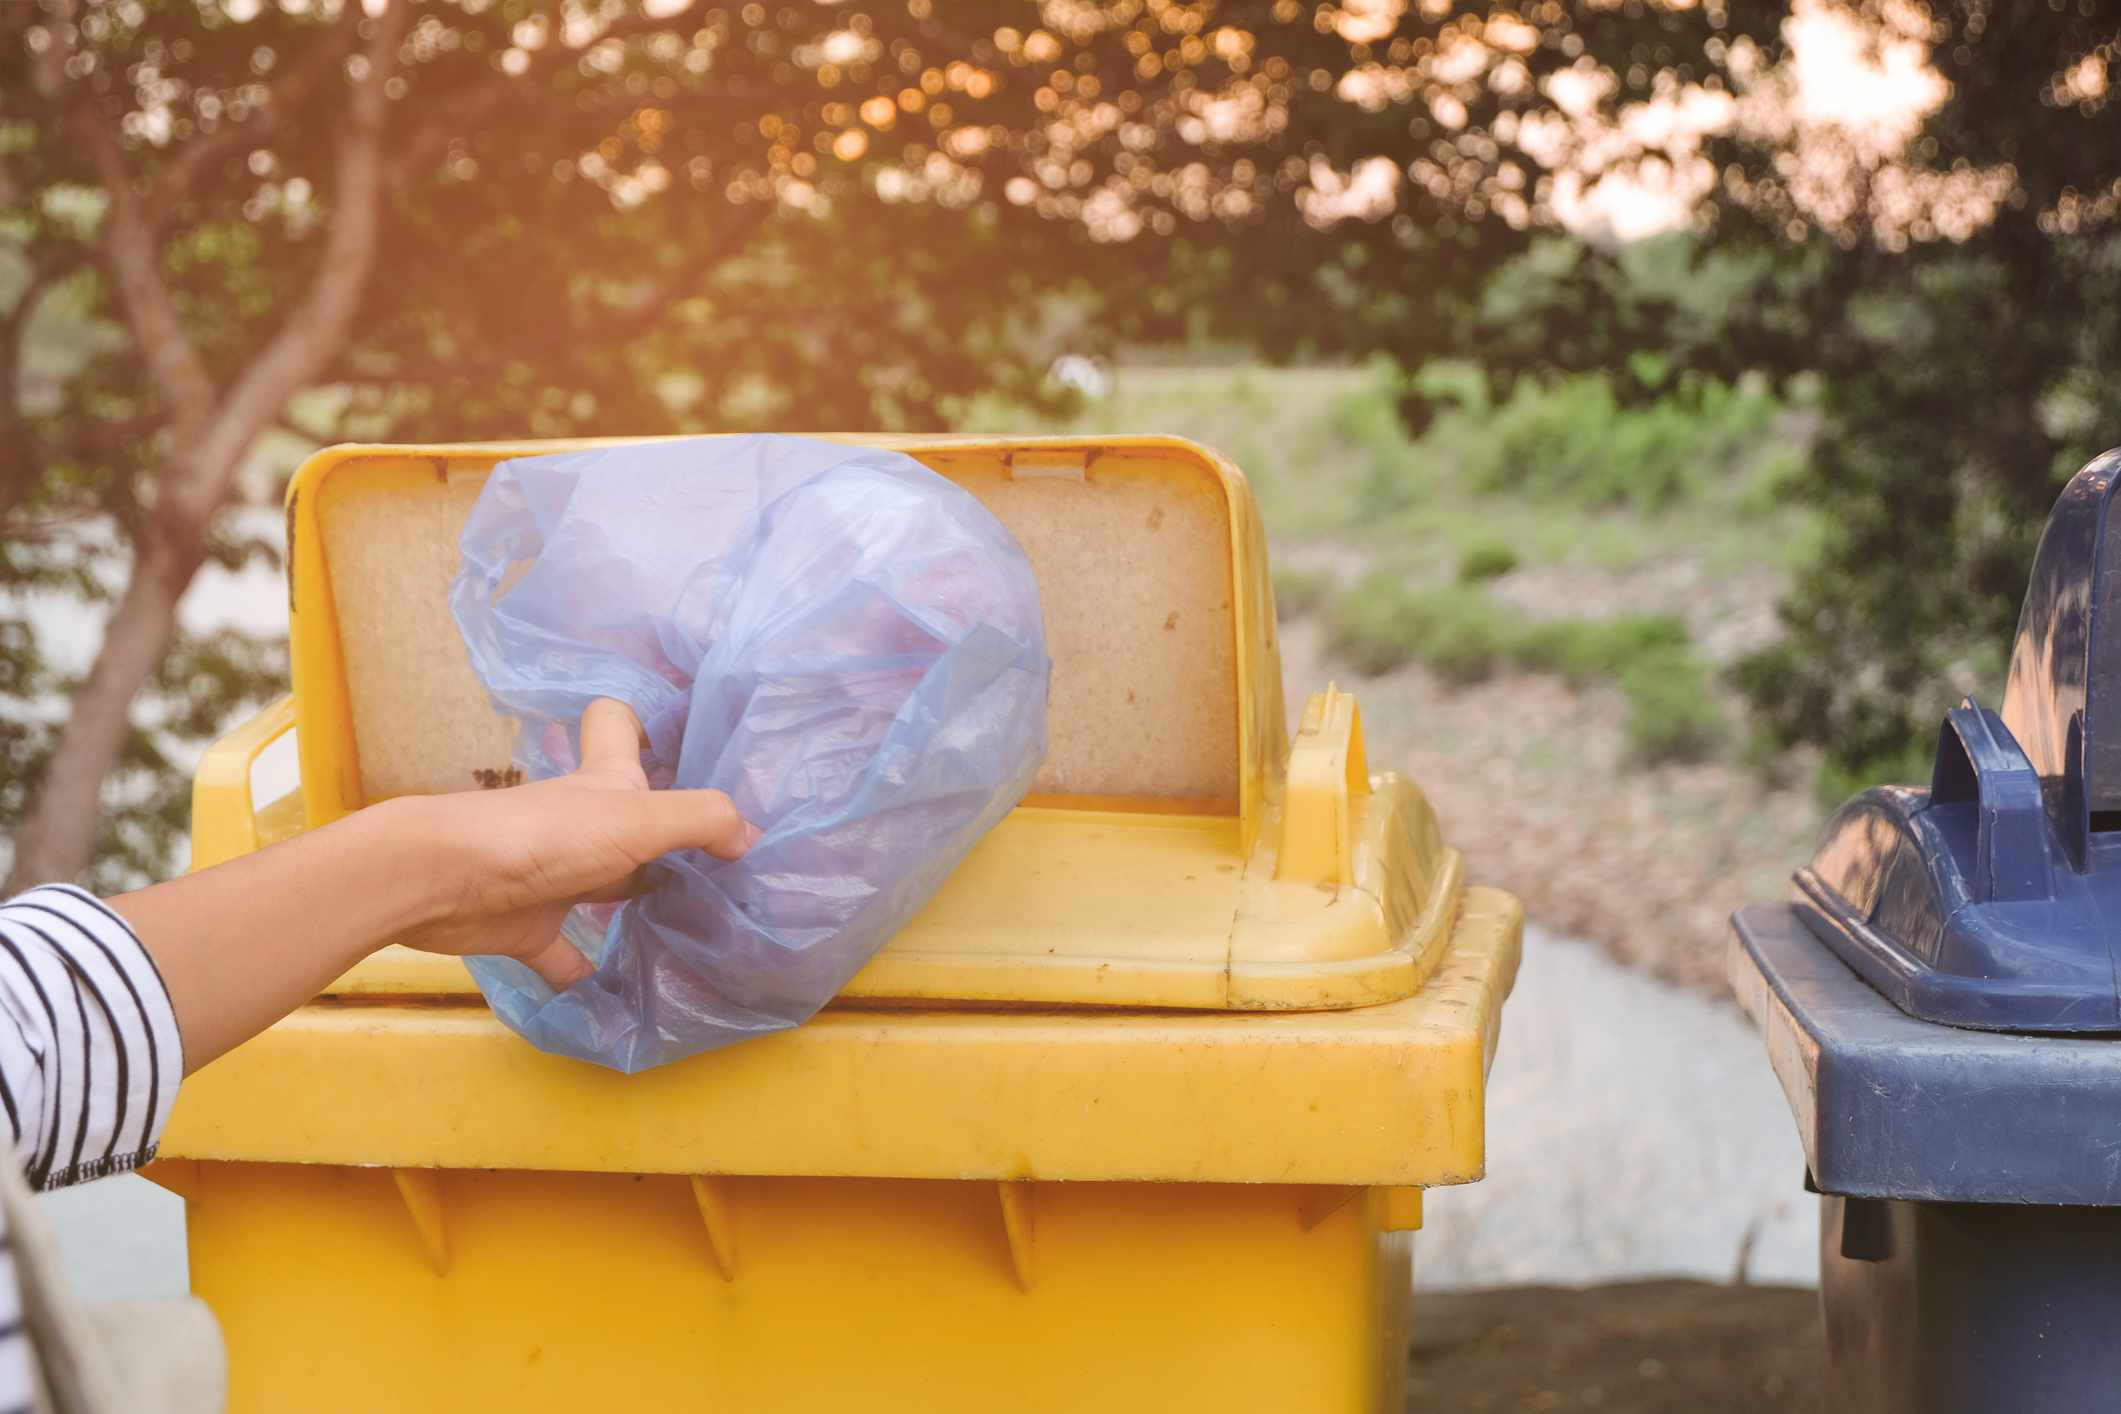 Person putting plastic bag in yellow recycling bin.